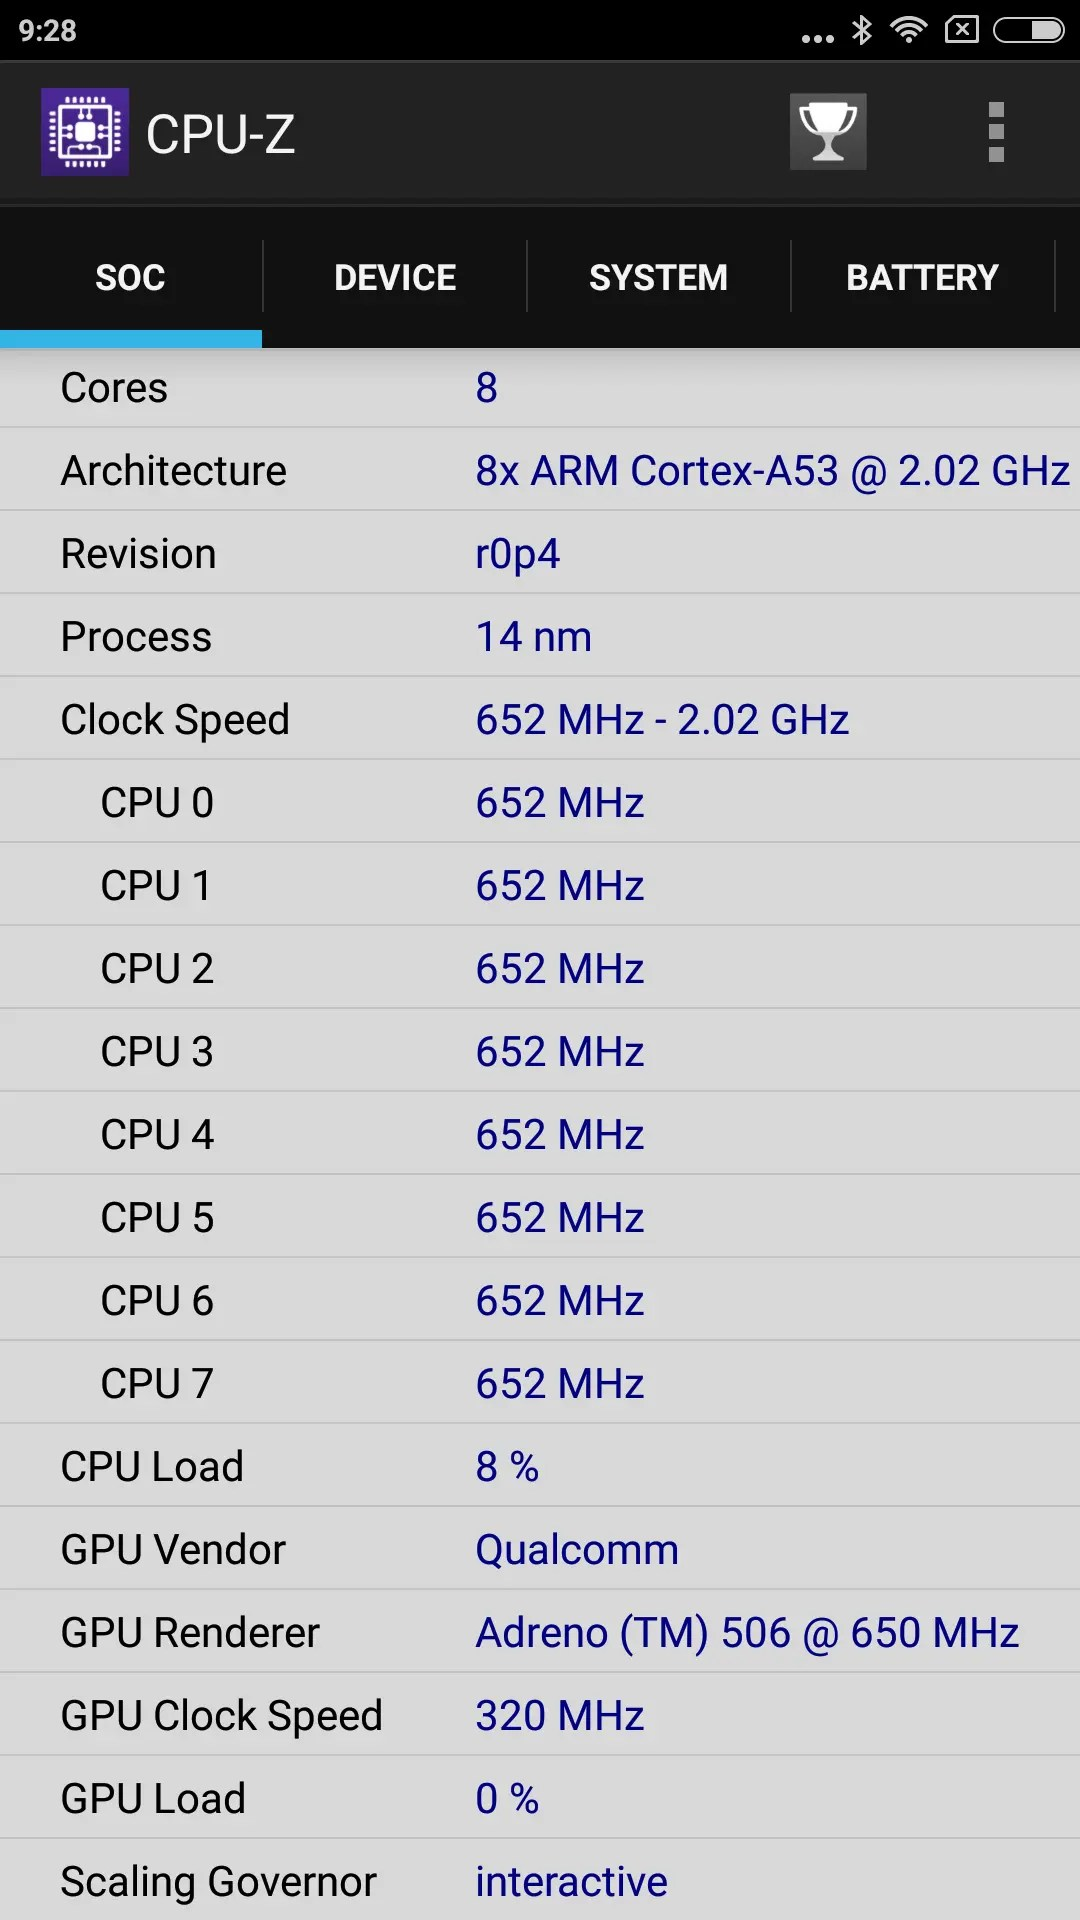 Xiaomi Redmi Note 4X CPU-Z SOC2